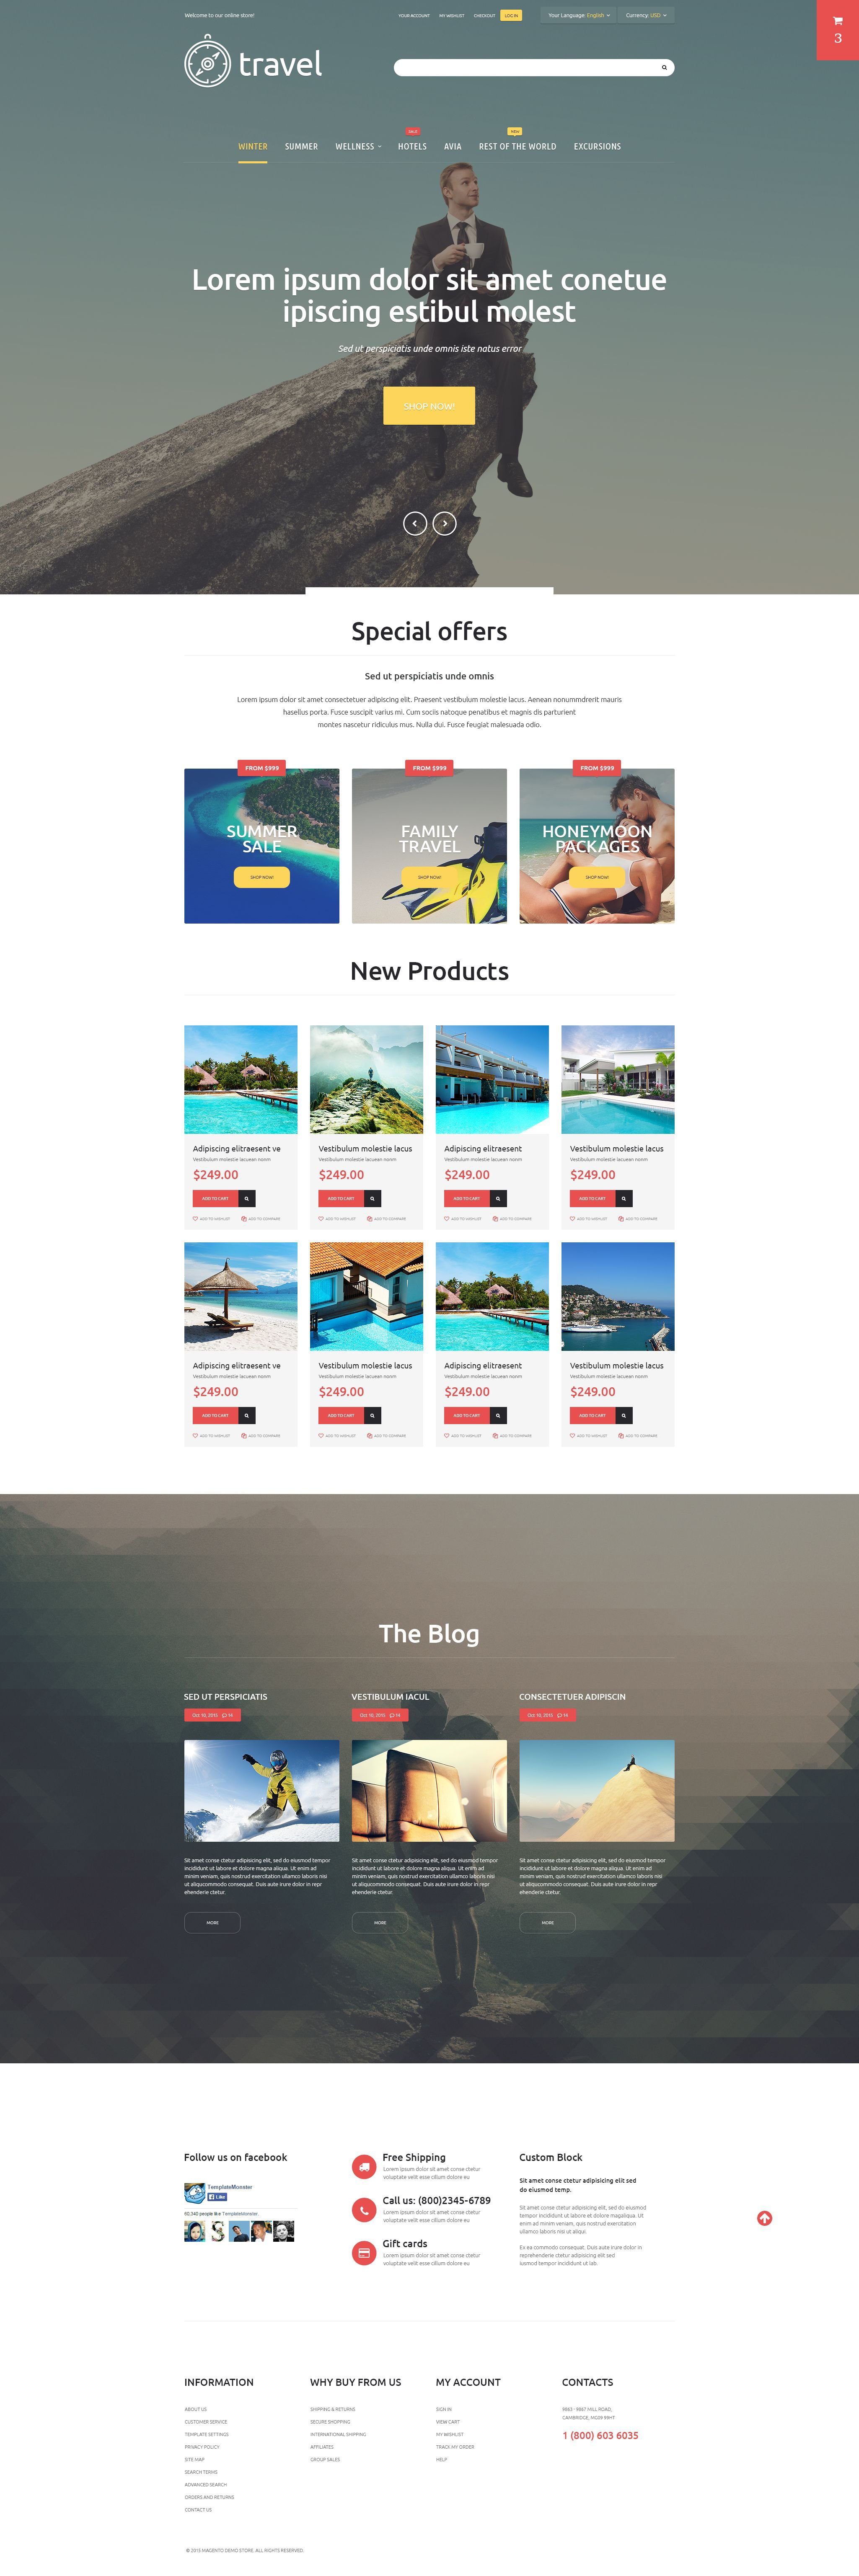 The Travel Agency Magento Design 54689, one of the best Magento themes of its kind (travel, most popular), also known as travel agency Magento template, compass Magento template, tour country Magento template, resort Magento template, spa Magento template, flight hotel Magento template, car Magento template, rental Magento template, cruise Magento template, sights Magento template, reservation Magento template, location Magento template, authorization Magento template, ticket Magento template, guide Magento template, beach Magento template, sea Magento template, relaxation Magento template, recreation Magento template, impression Magento template, air Magento template, liner Magento template, traveling Magento template, apartment Magento template, vacation Magento template, rest Magento template, comfort Magento template, destination Magento template, explorat and related with travel agency, compass, tour country, resort, spa, flight hotel, car, rental, cruise, sights, reservation, location, authorization, ticket, guide, beach, sea, relaxation, recreation, impression, air, liner, traveling, apartment, vacation, rest, comfort, destination, explorat, etc.